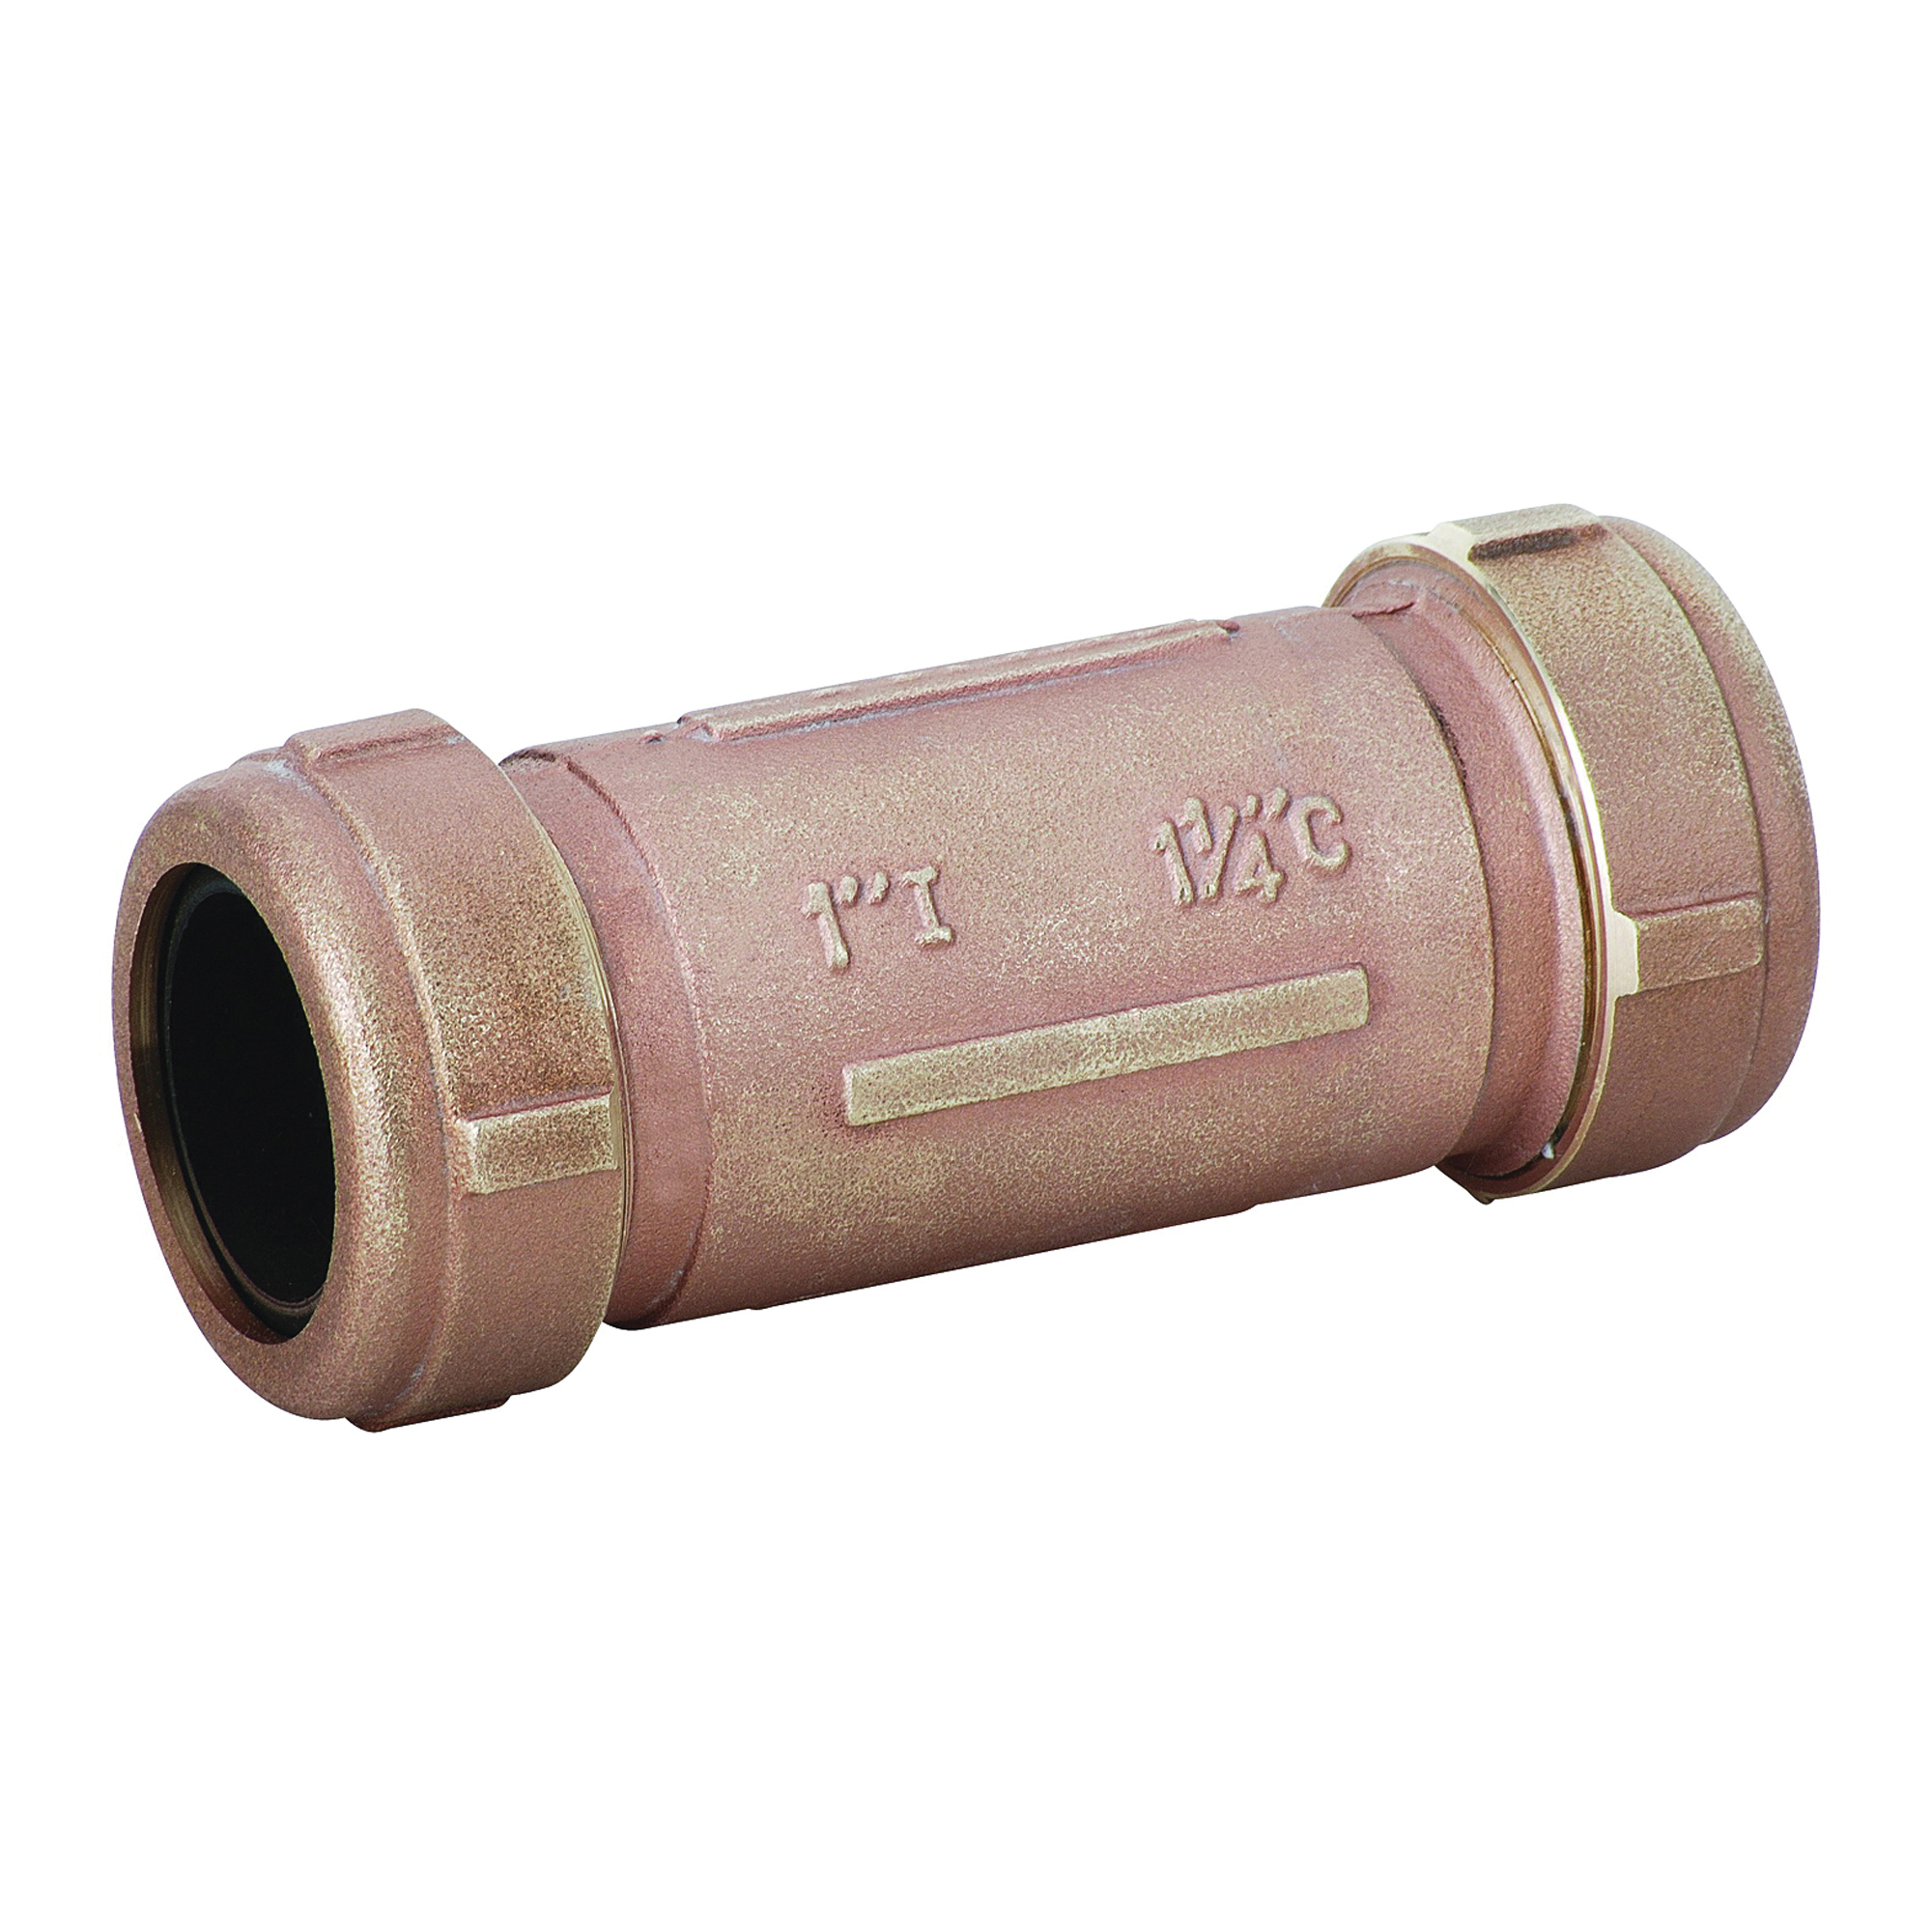 Matco-Norca™ 450L05LF 450LLF Long Compression Coupling, 1 x 1-1/4 in Nominal, IPS x CTS End Style, Brass, Import